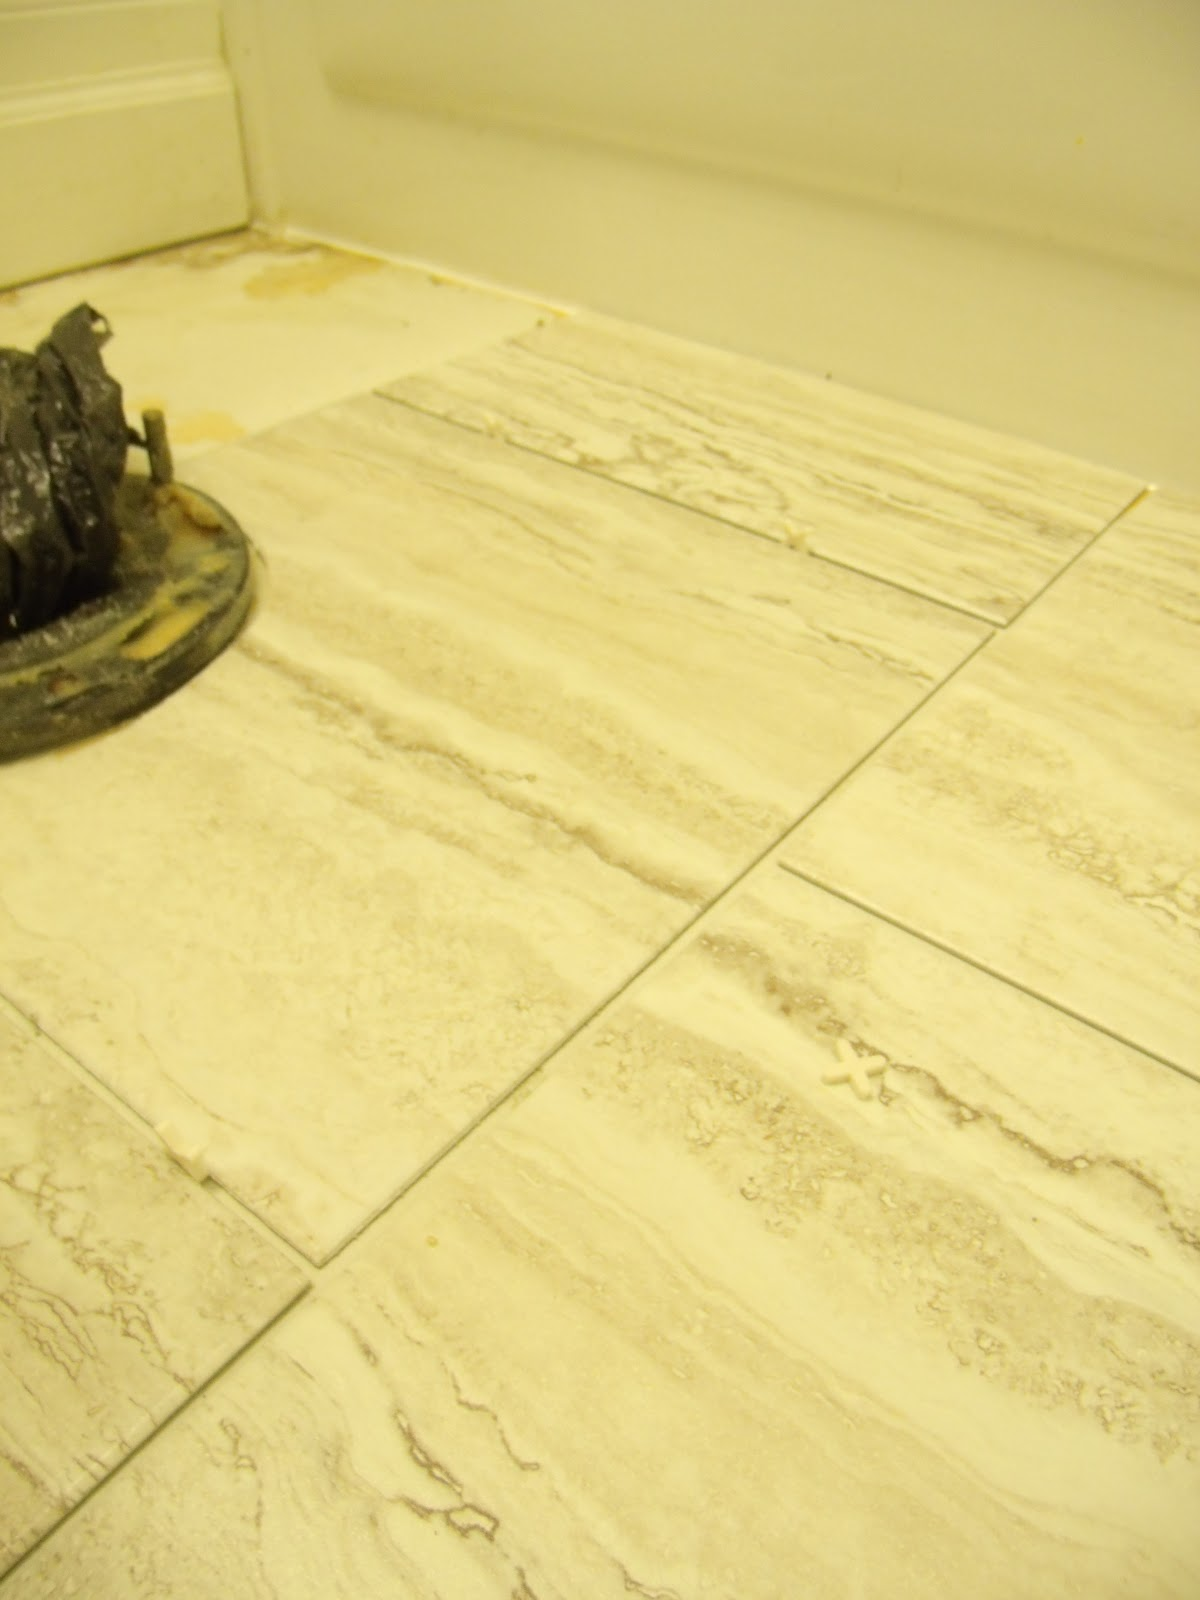 How to install peel and stick vinyl tile that you can grout how to install peel and stick vinyl tile that you can grout frugal family times dailygadgetfo Gallery